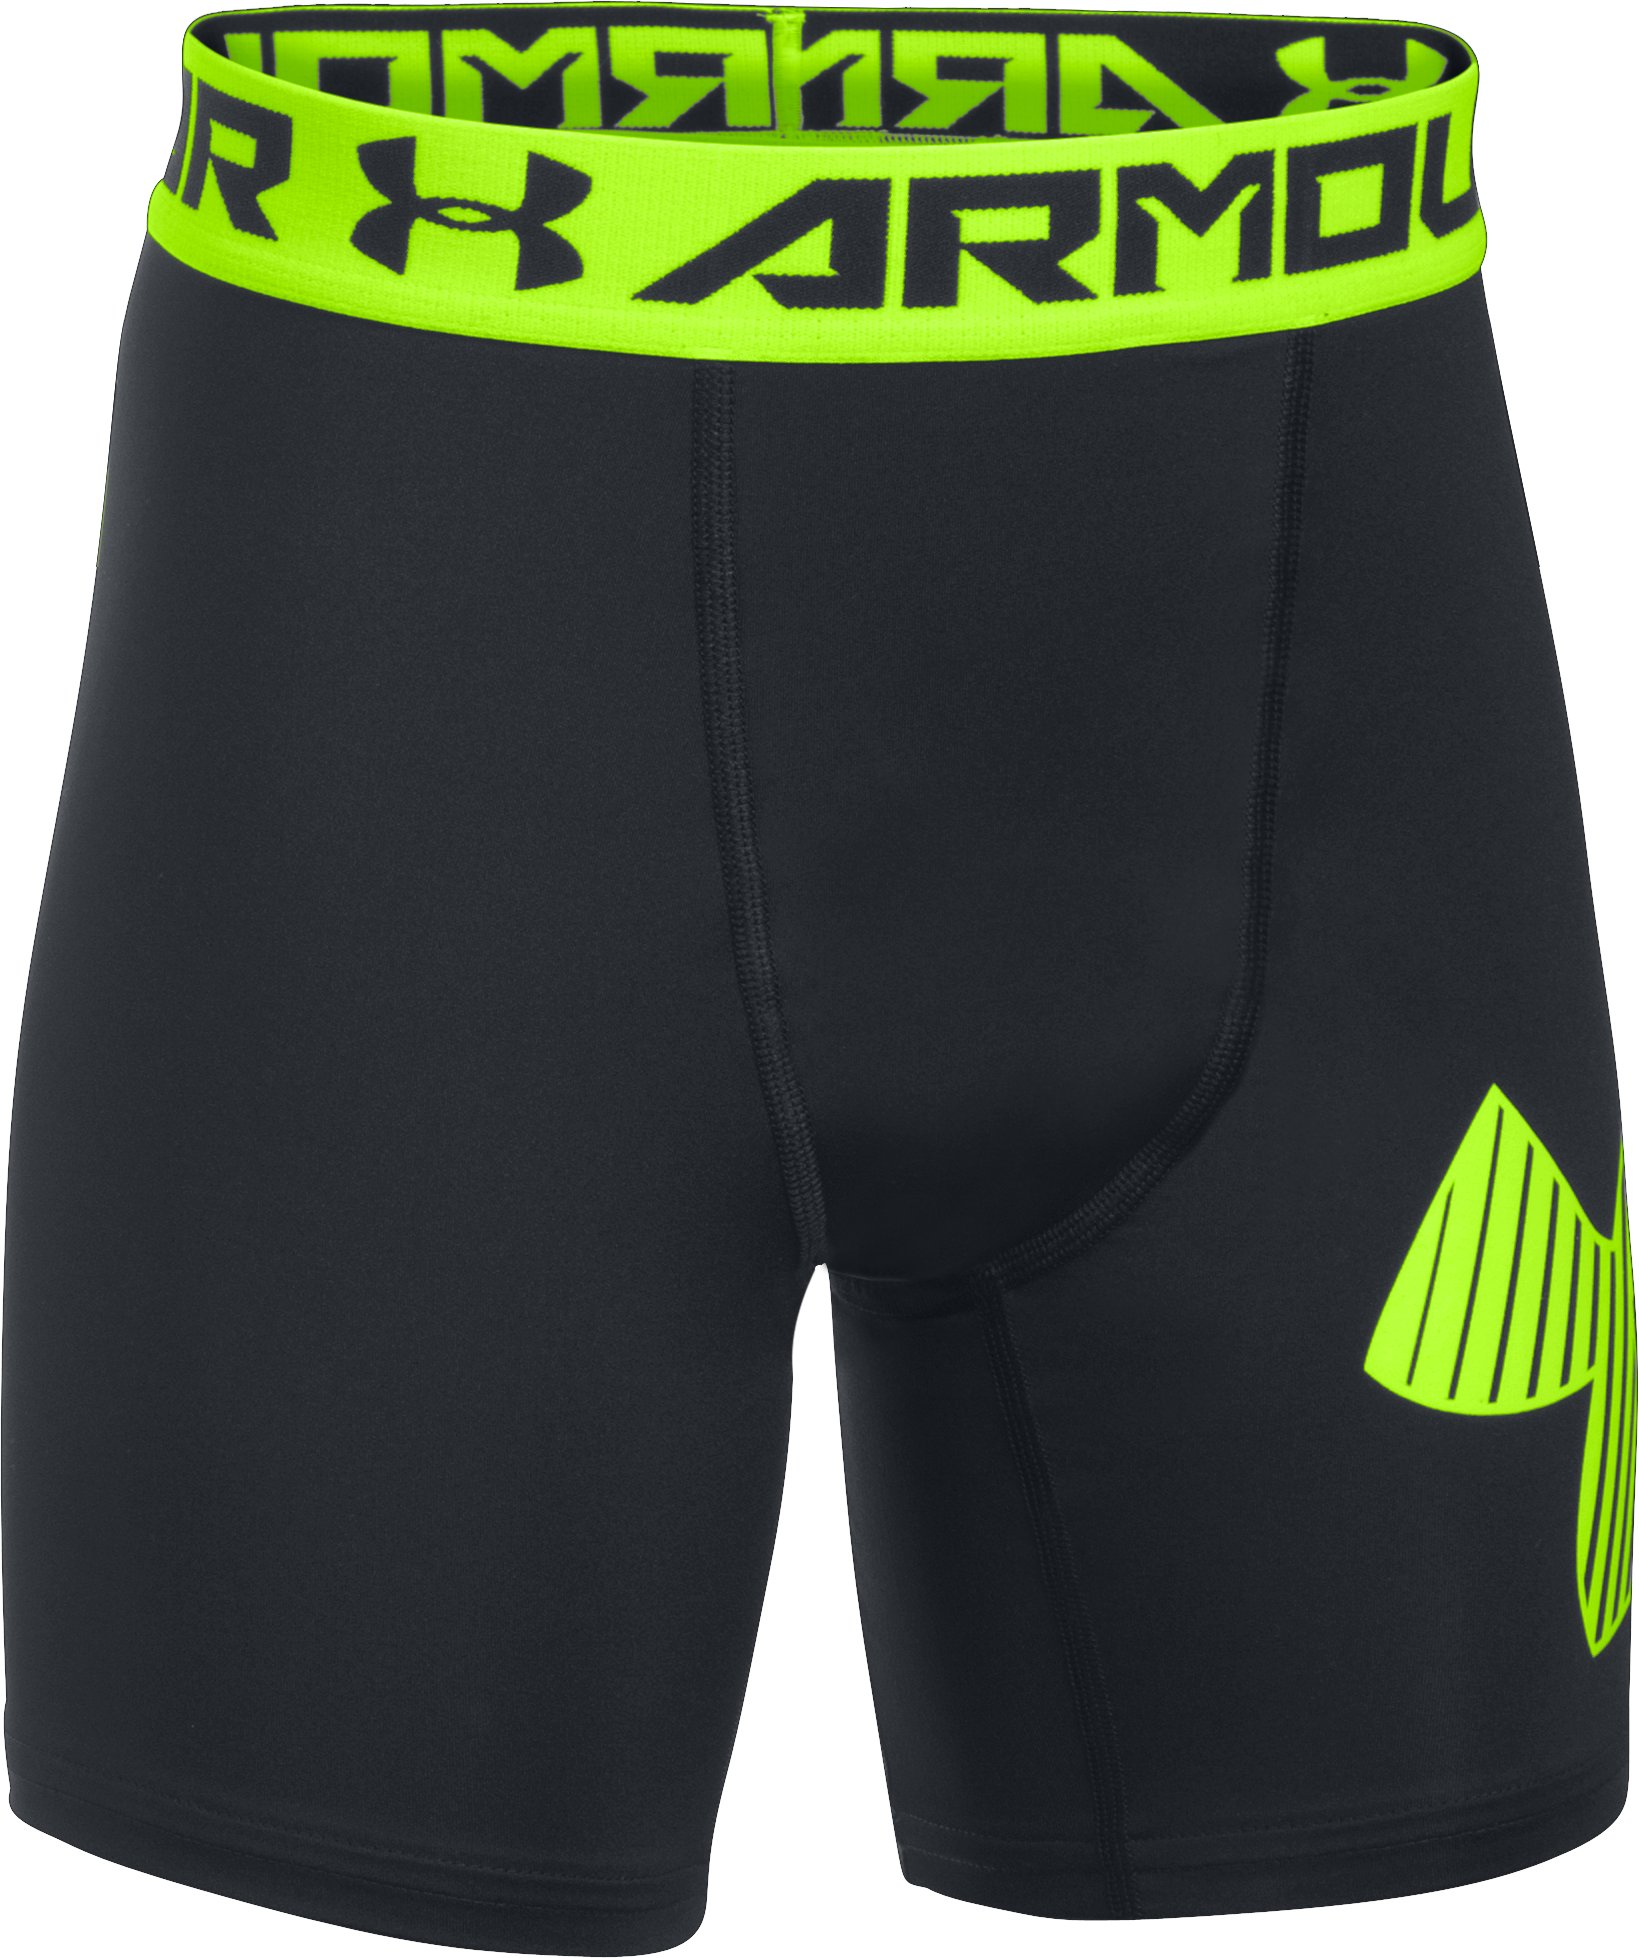 Boys' HeatGear® Armour Mid Shorts, Black